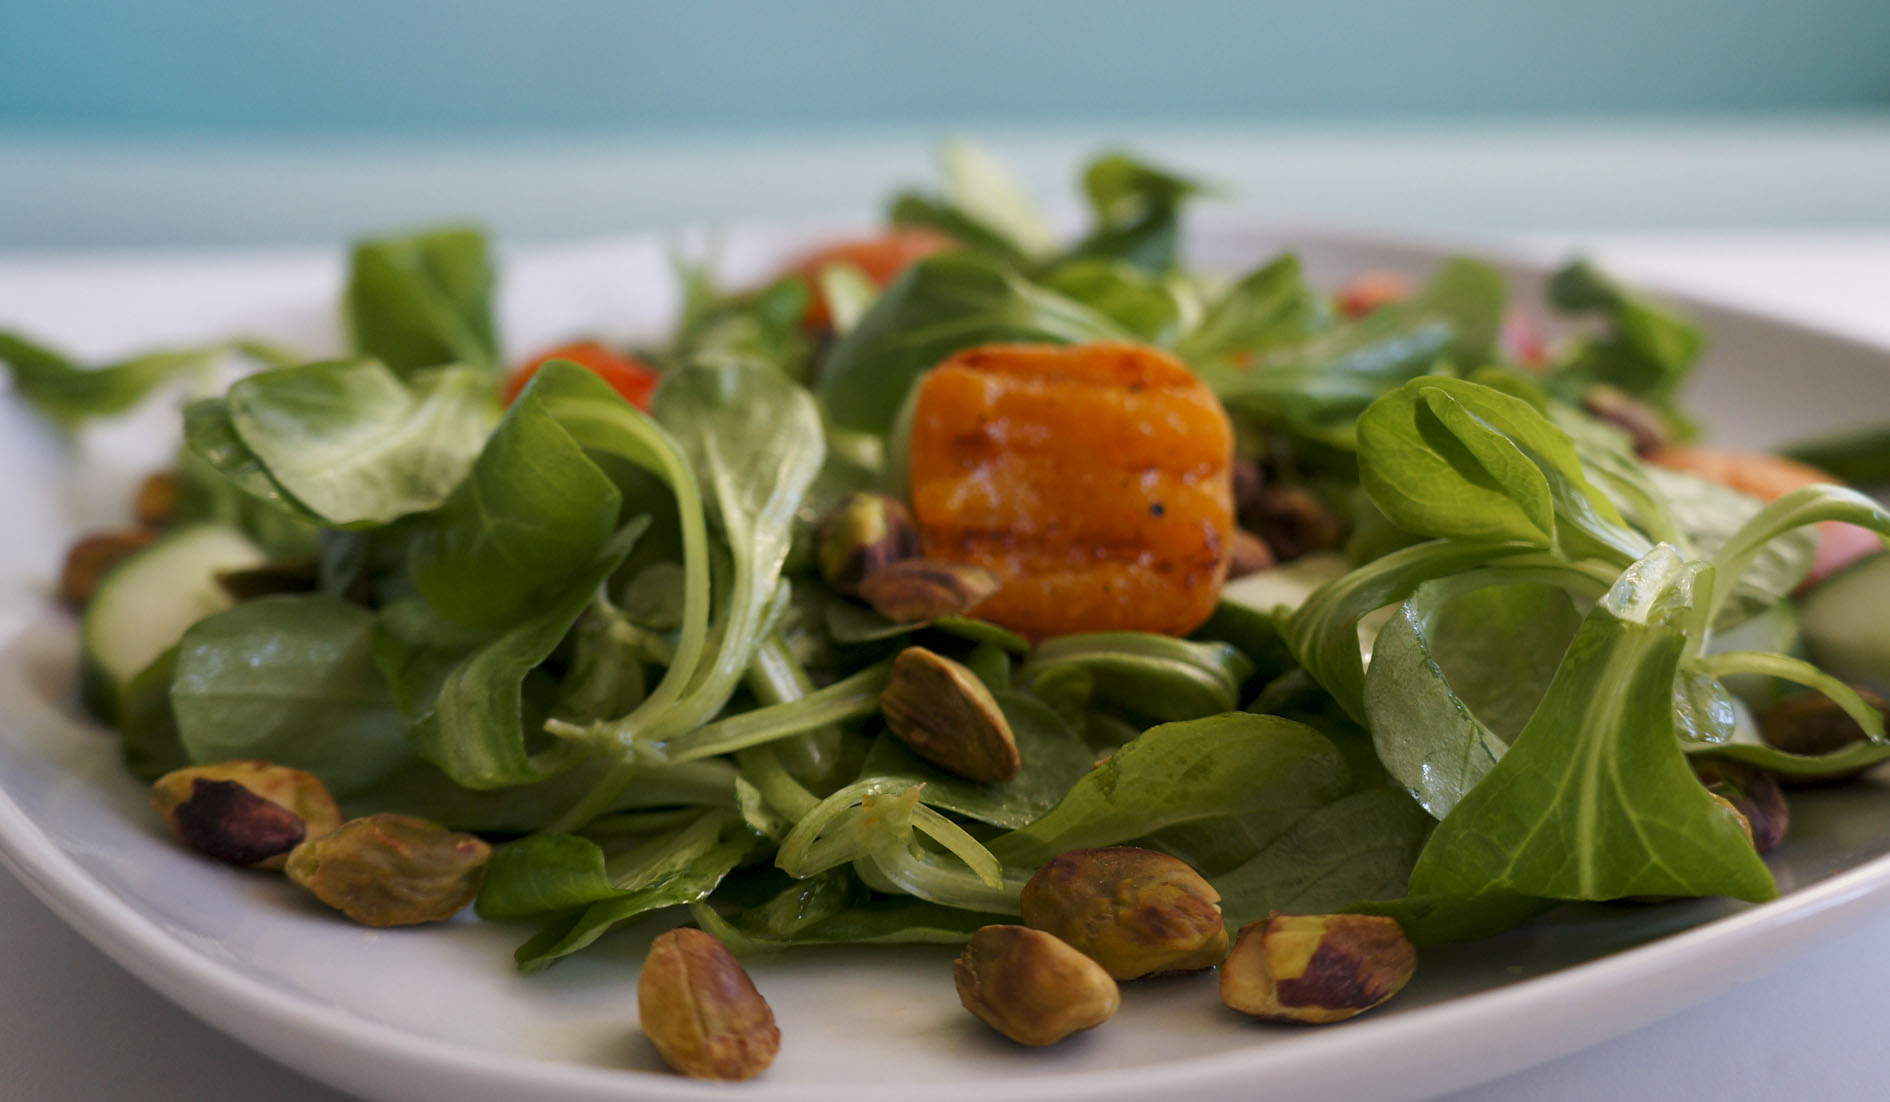 Rose salad, with apricot and pistachio